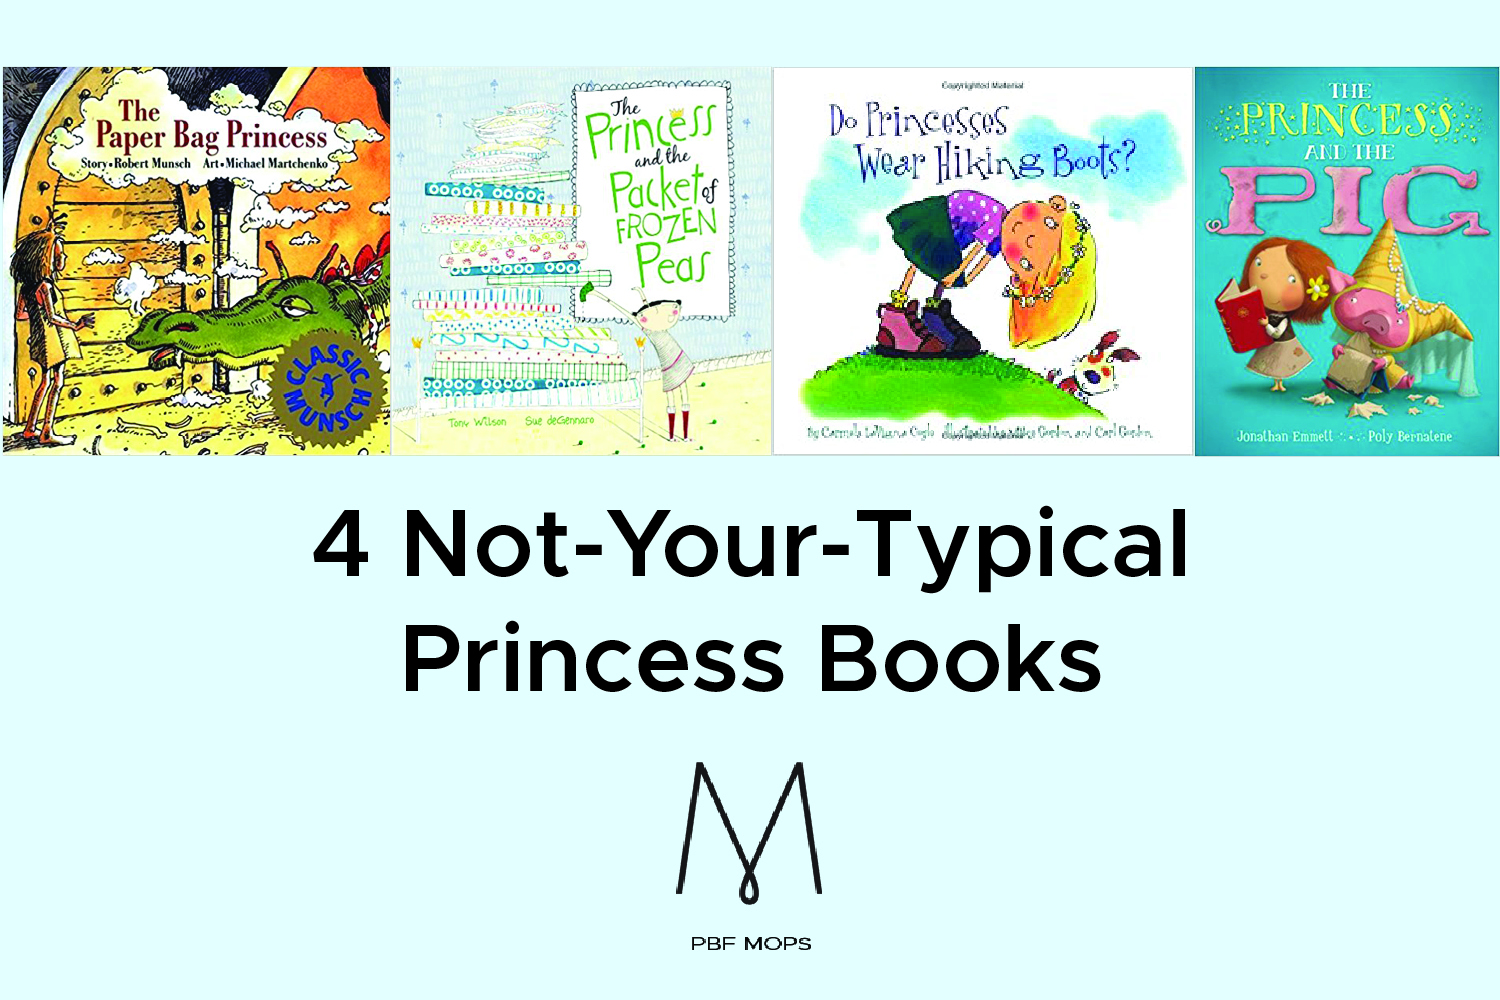 Children' Book Chat - 4 Not-Your-Typical Princess Books